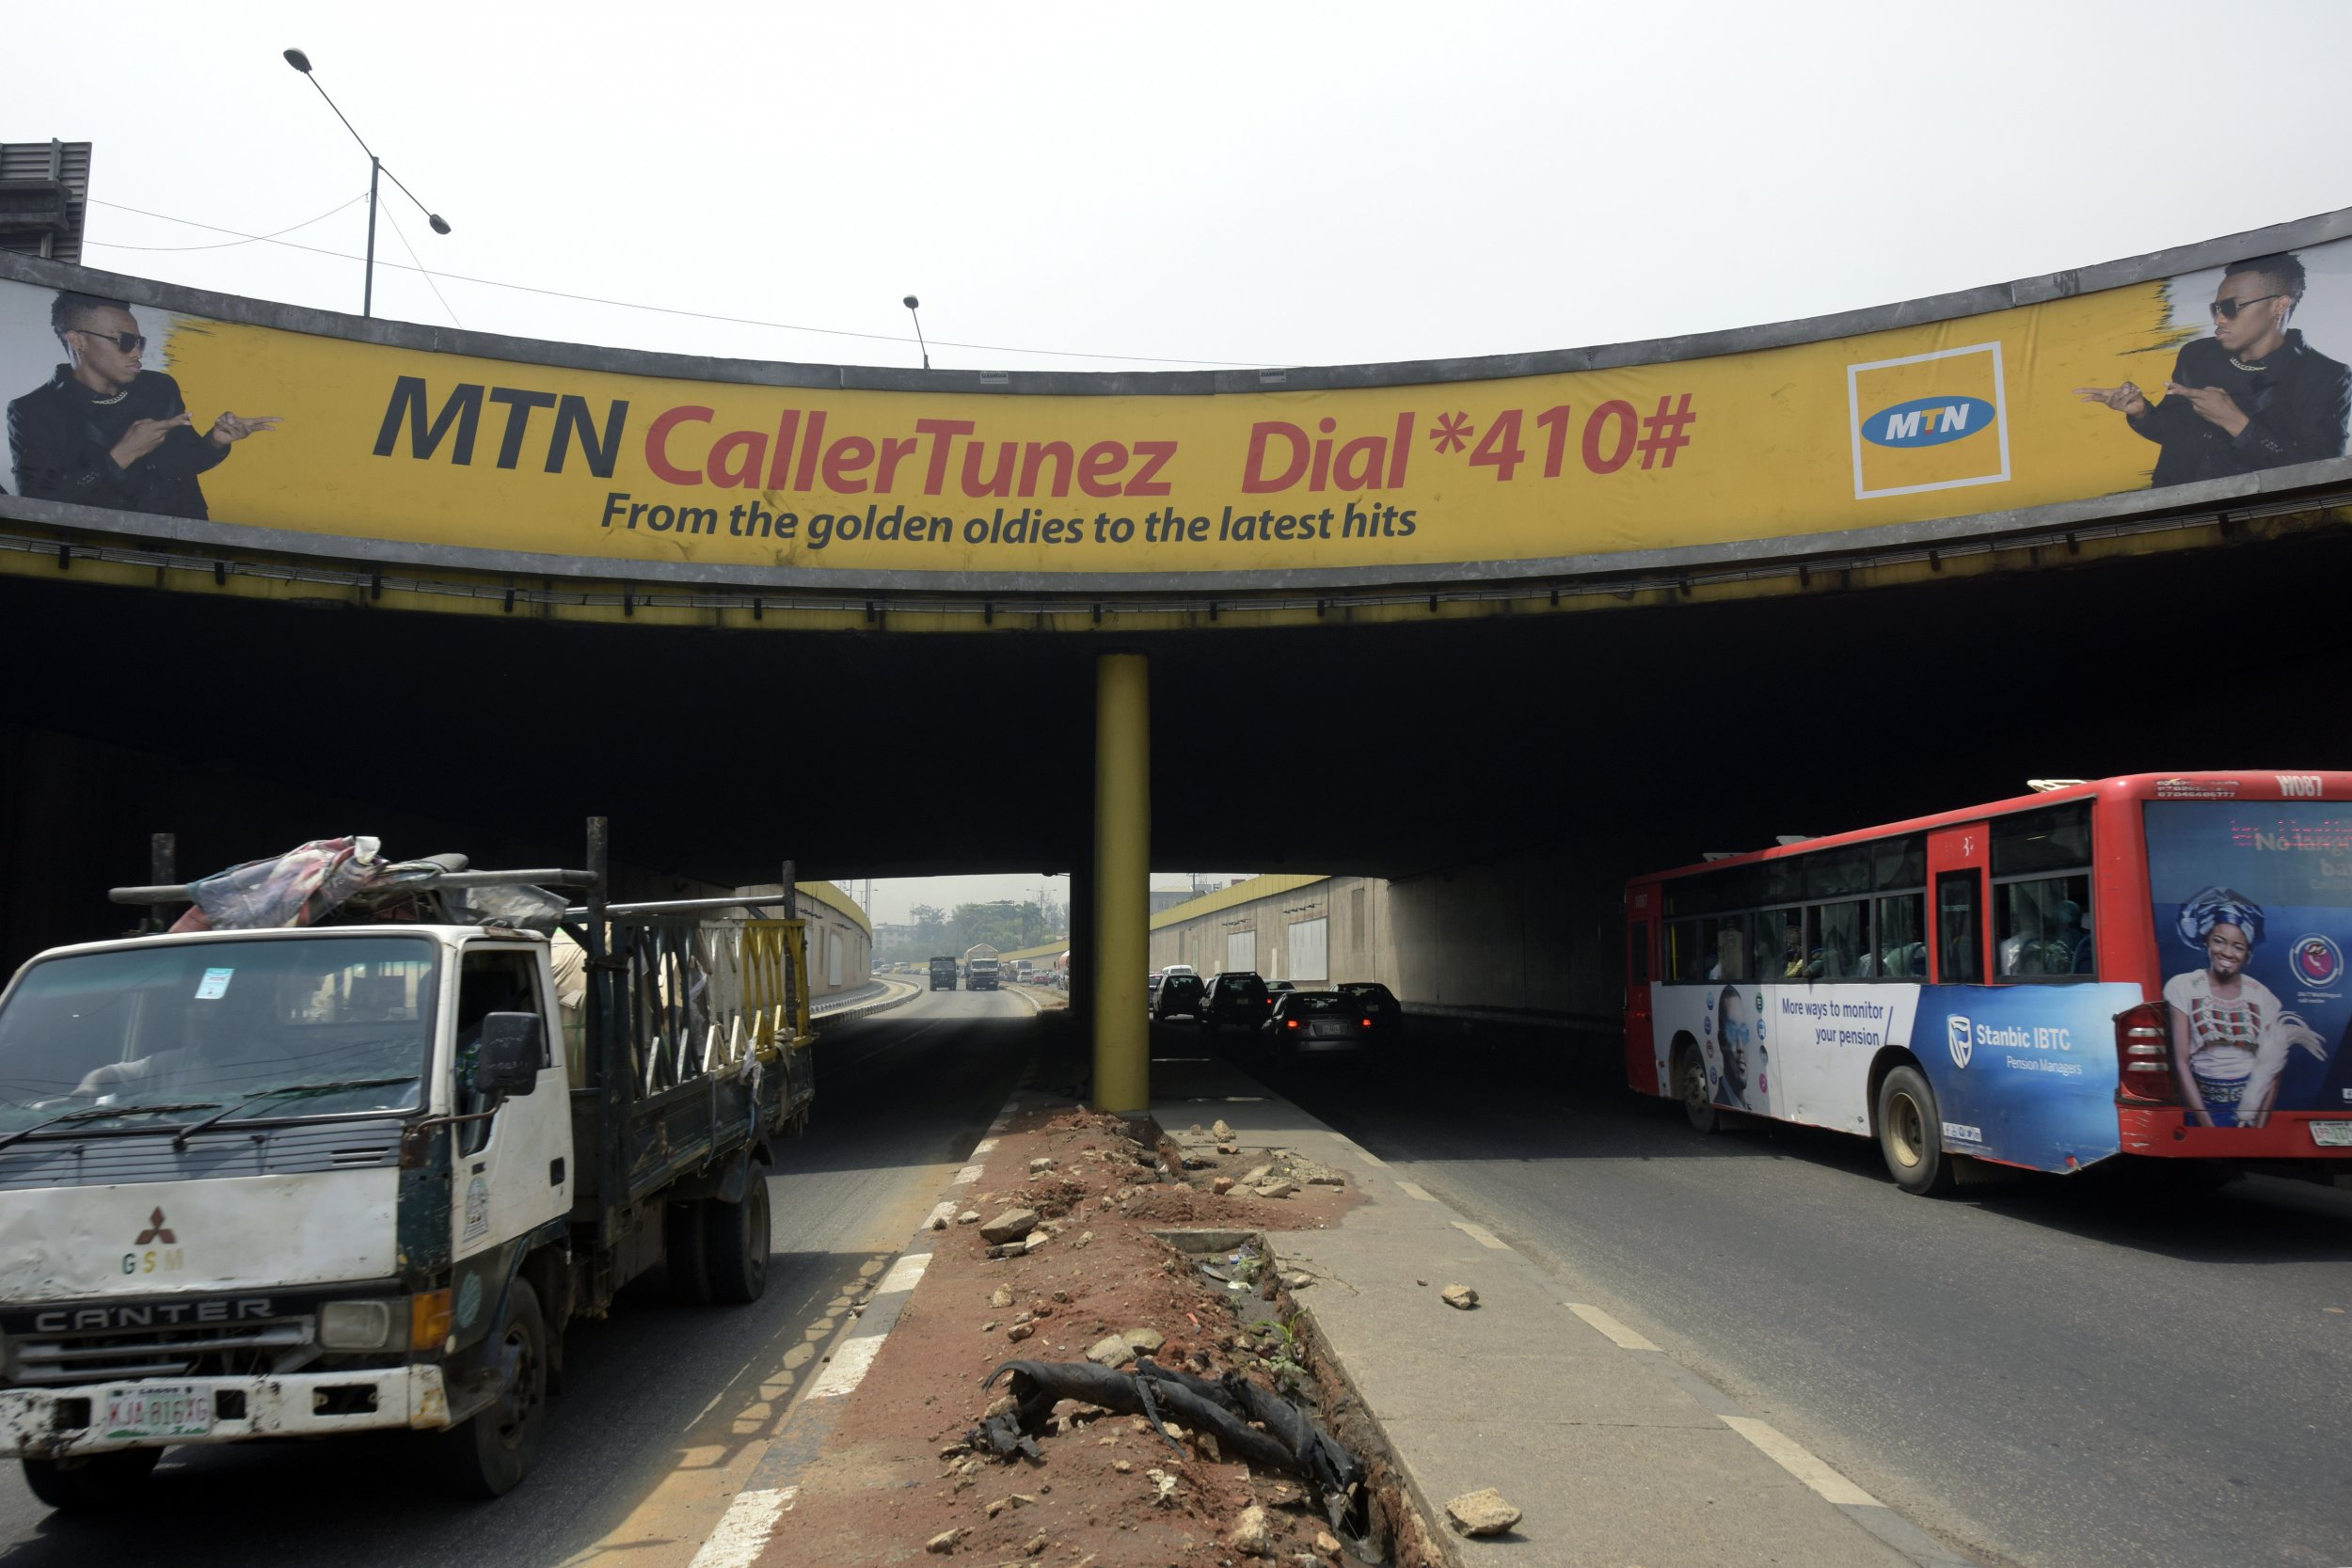 An MTN advert is seen in Lagos.